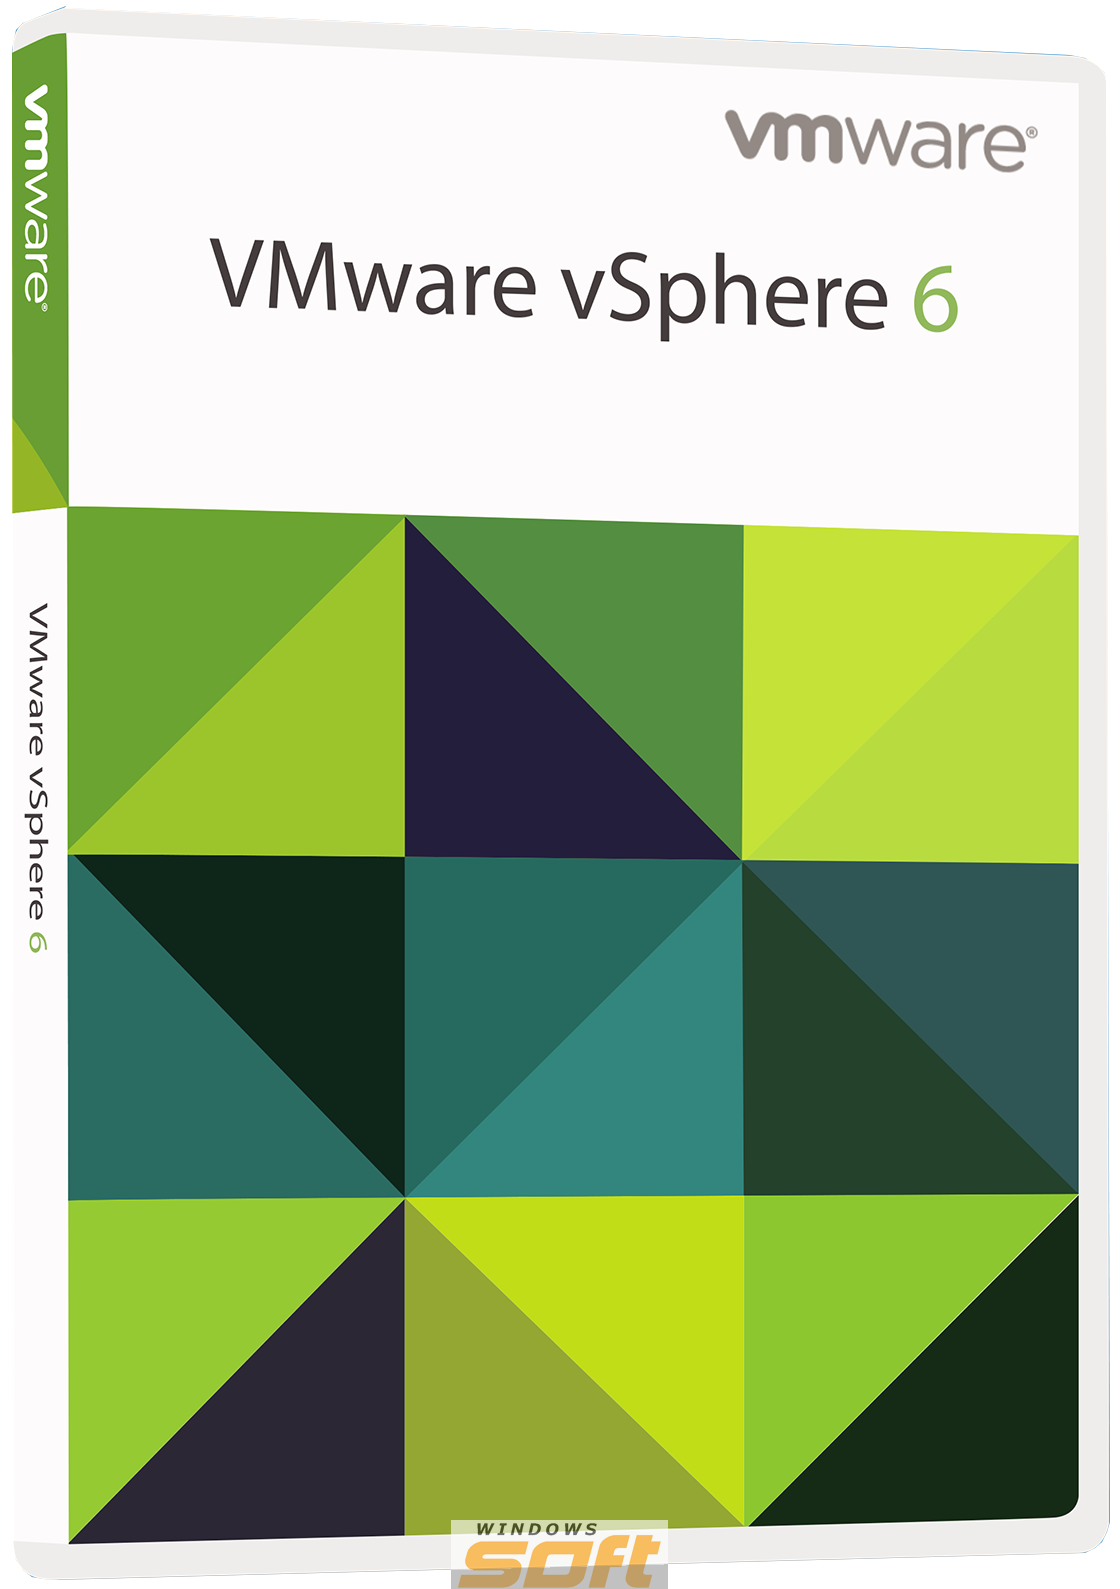 Купить Basic Support/Subscription for VMware vSphere 6 for Desktop (100 VM Pack) VS6-DT100VM-G-SSS-C по доступной цене